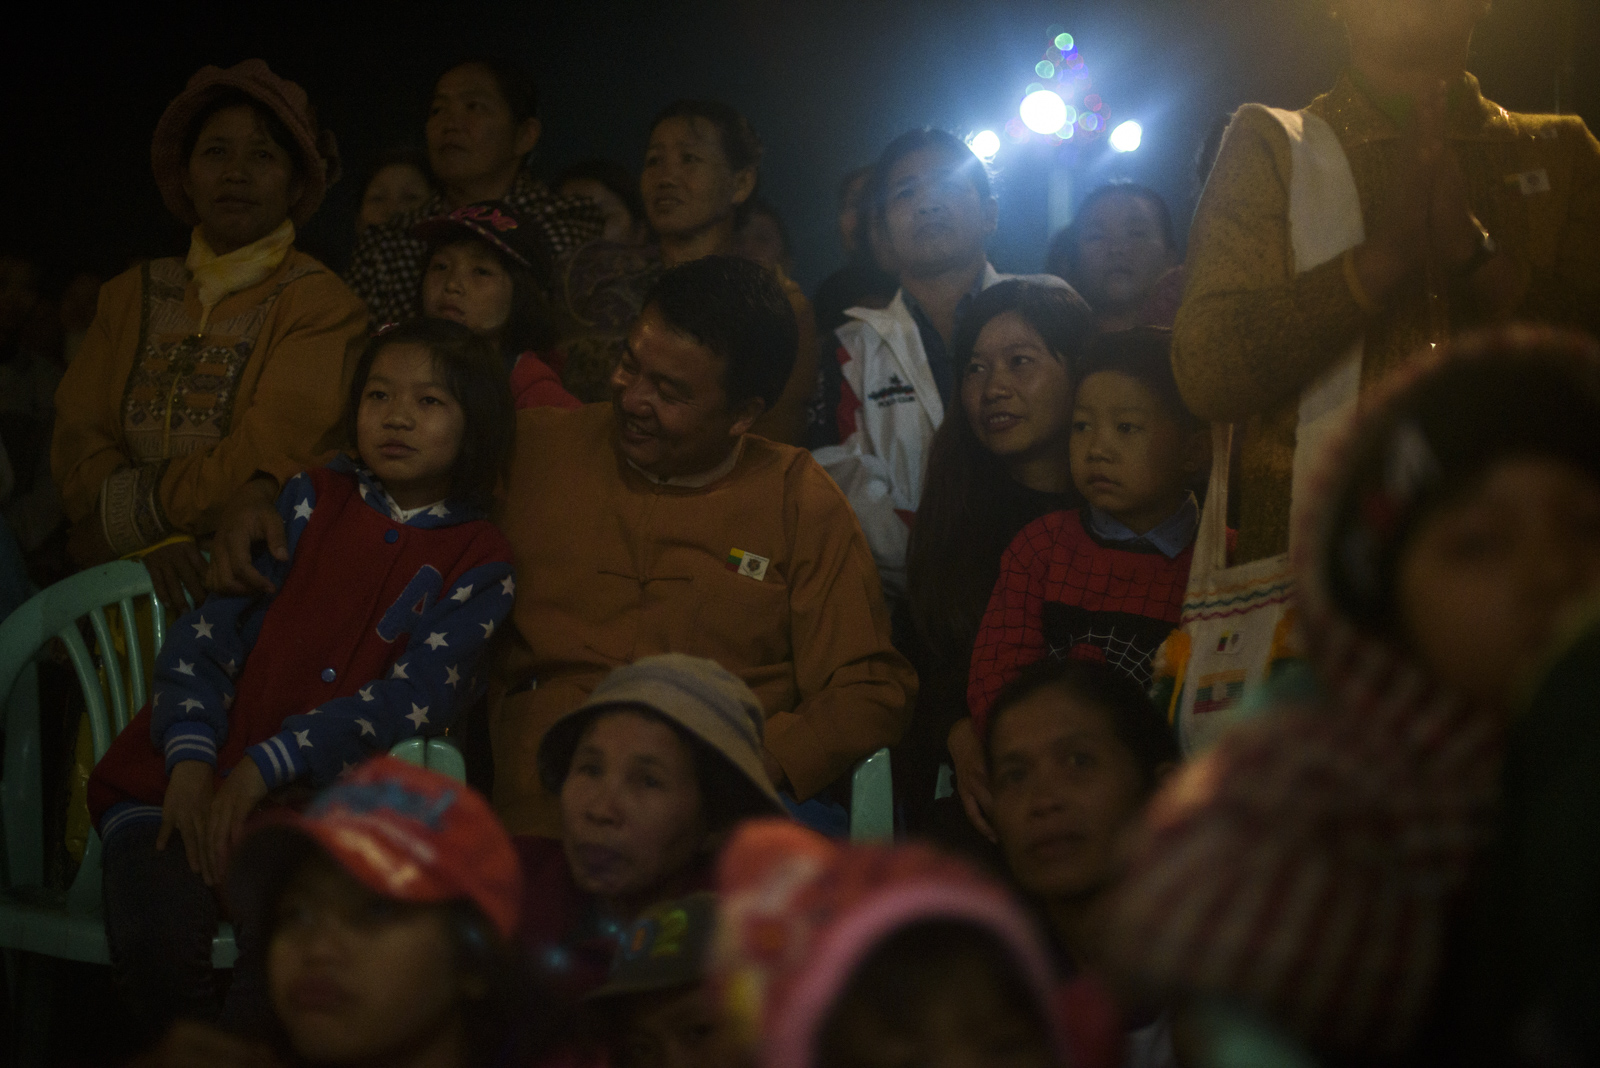 One Leng watches the concert with his wife, daughter and son amid a crowd of supporters.